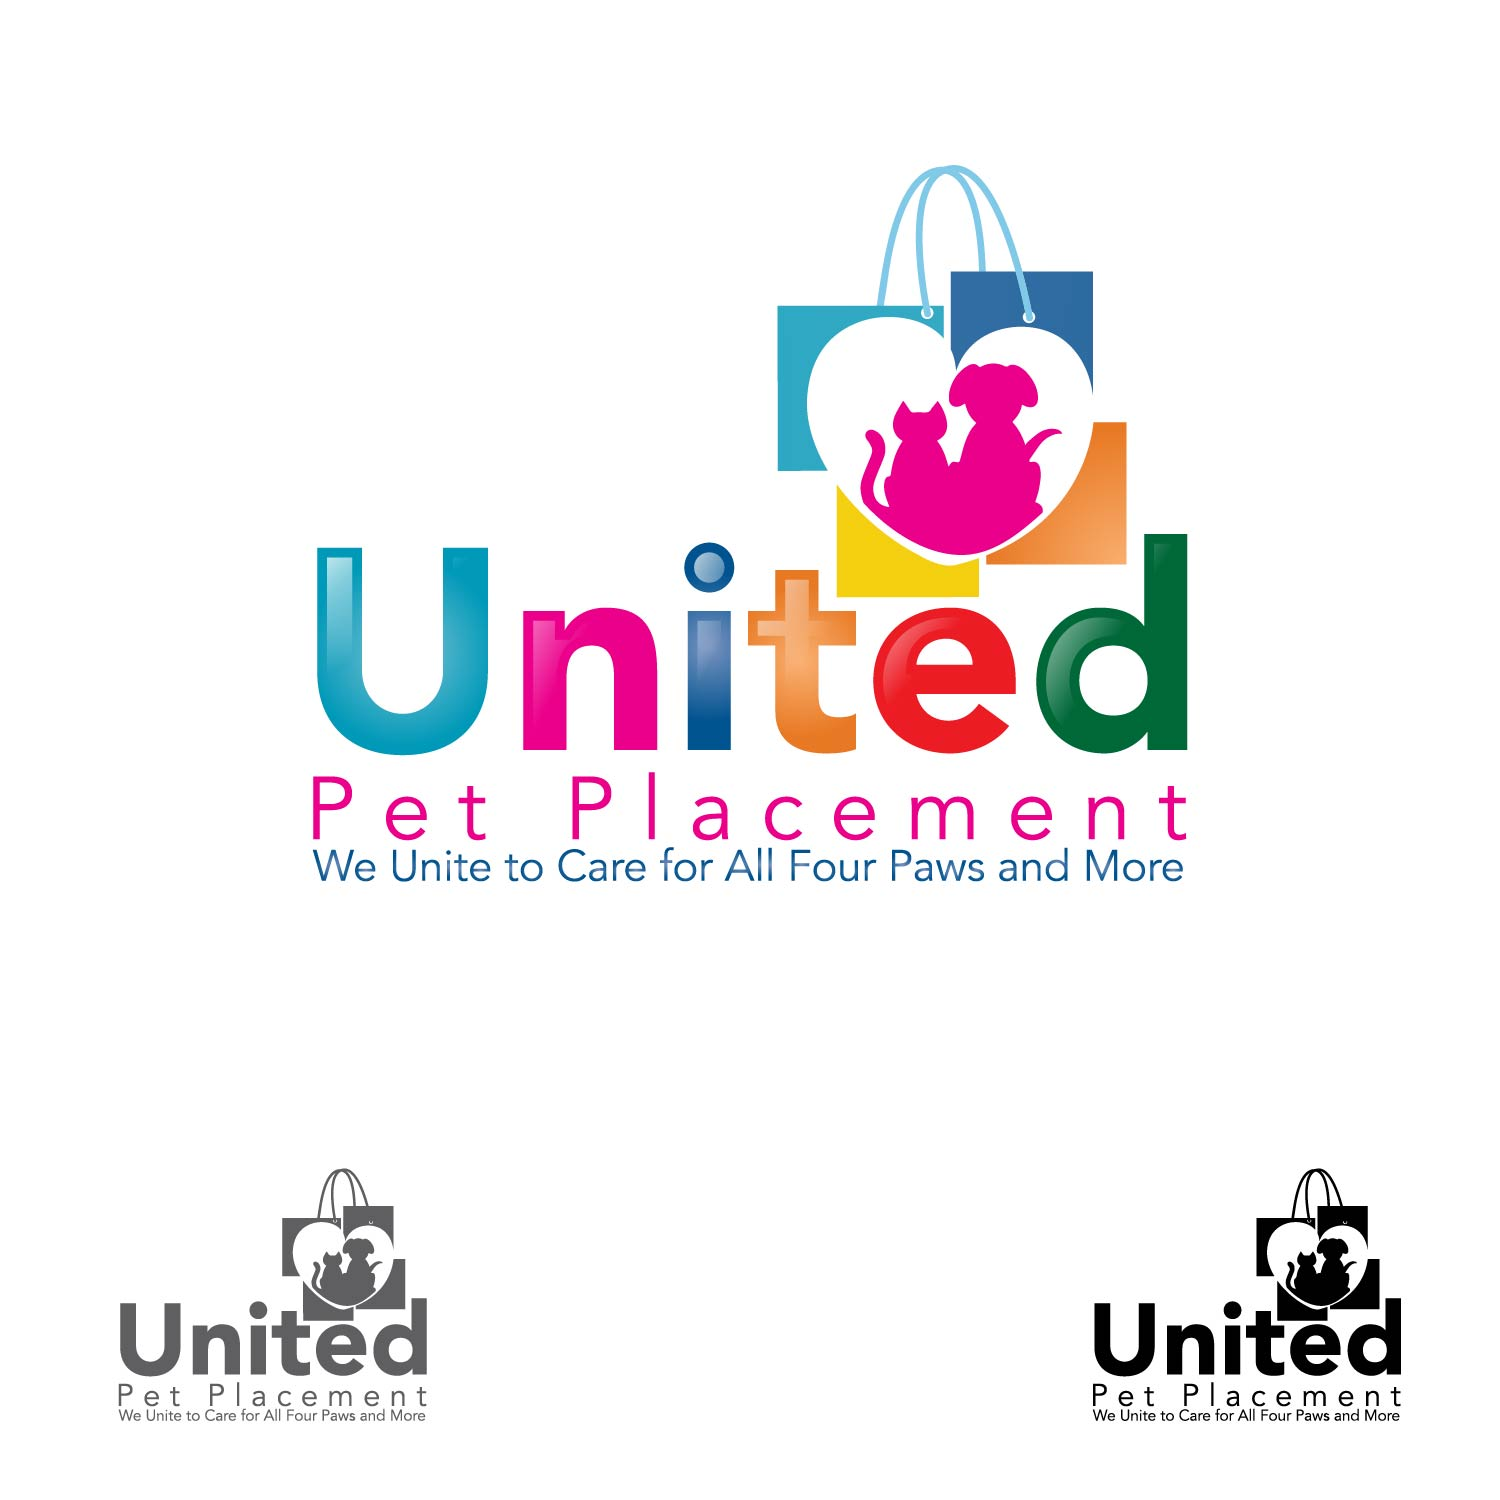 Logo Design by lagalag - Entry No. 60 in the Logo Design Contest Artistic Logo Design for united pet placement.